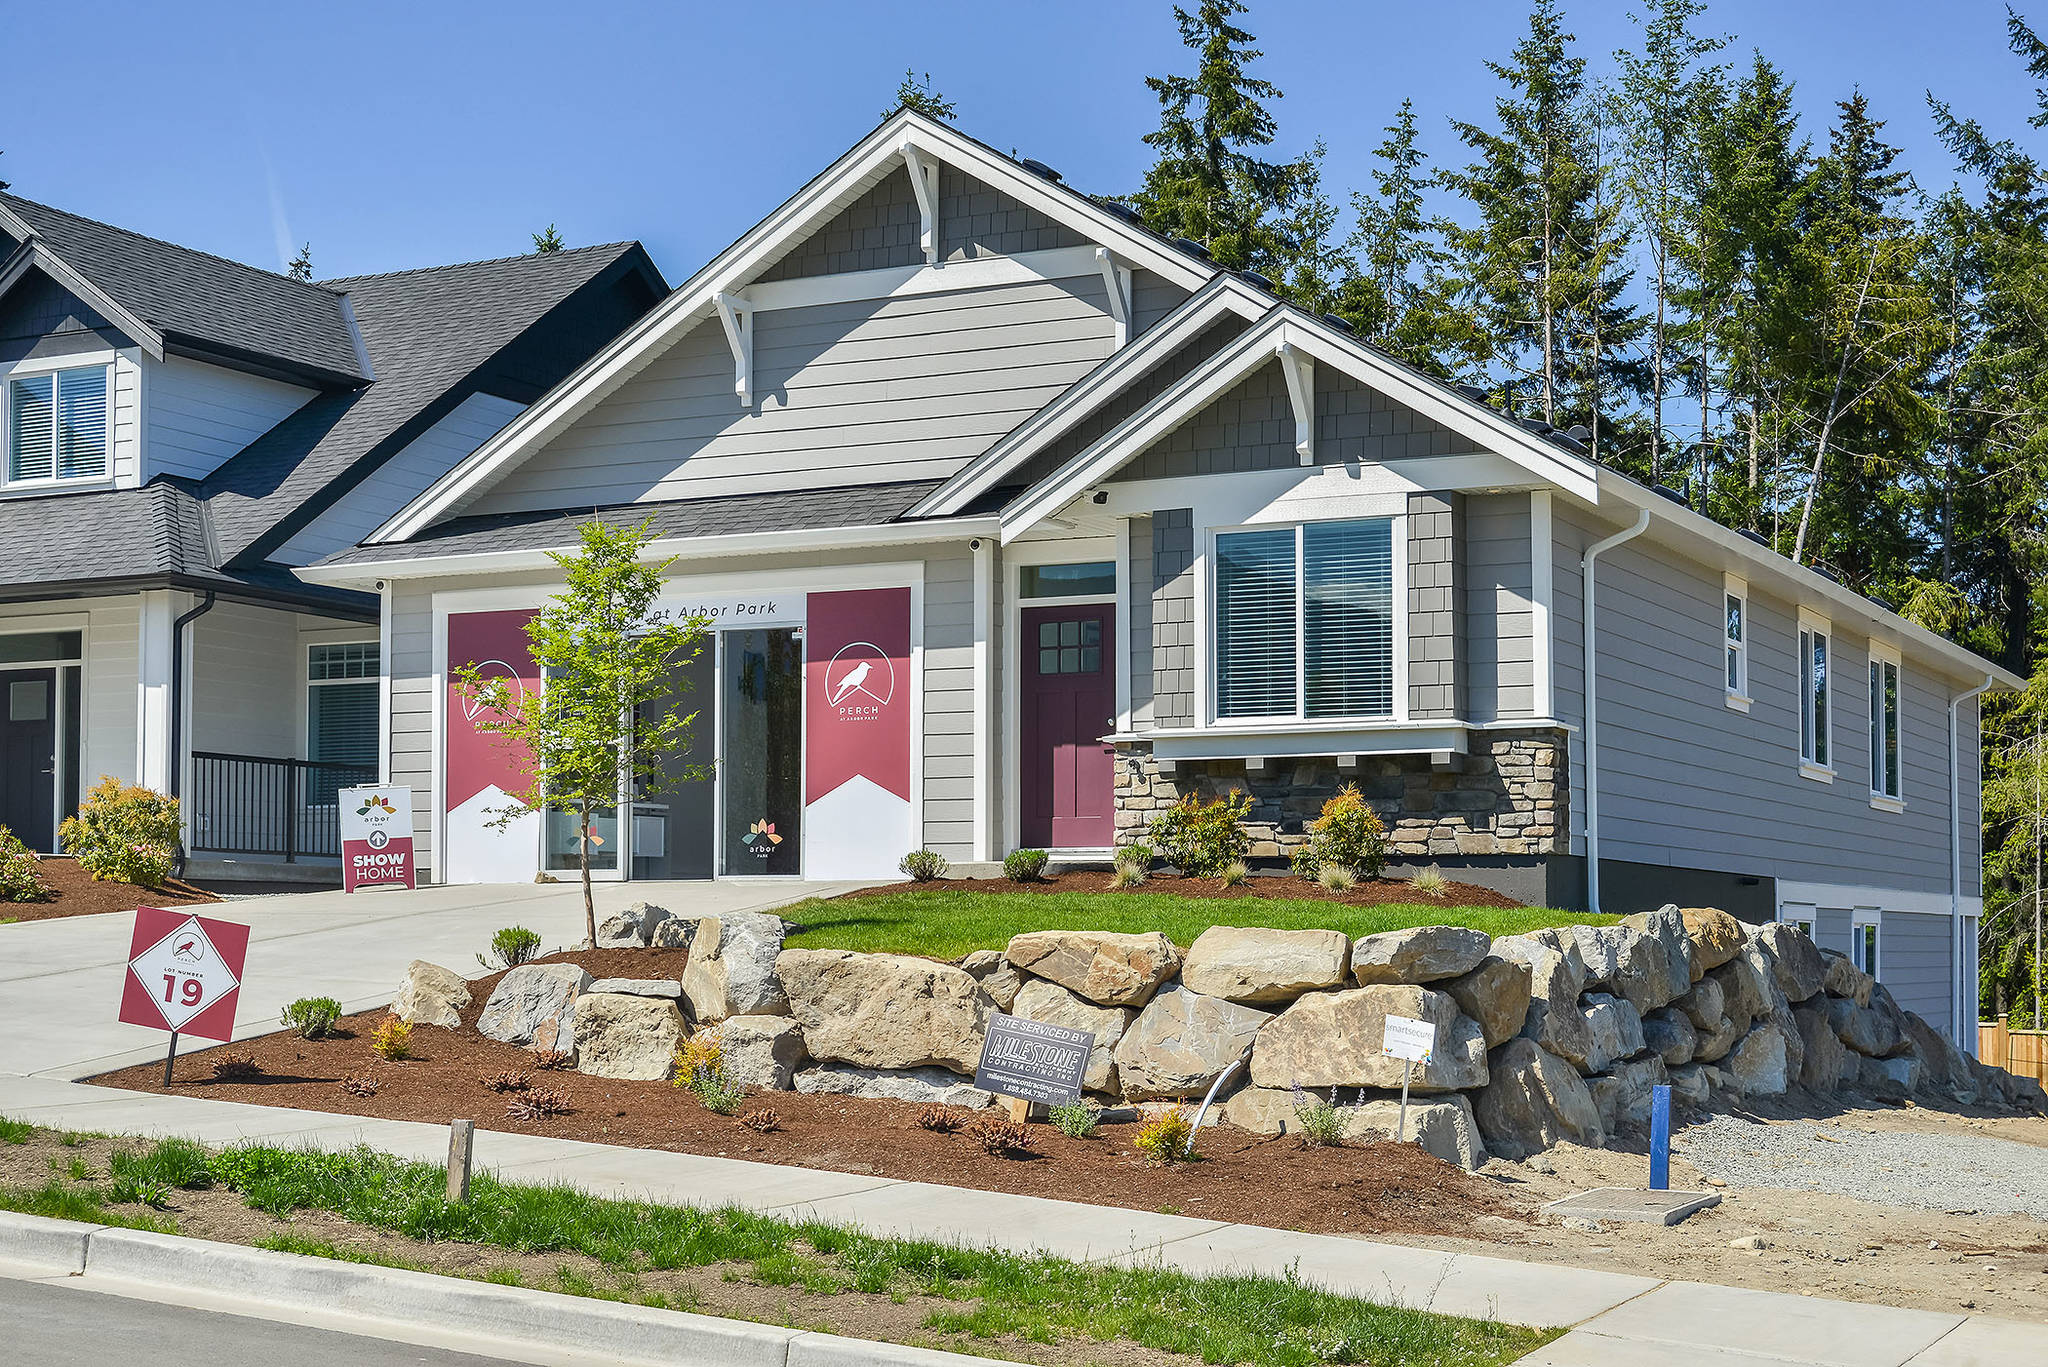 Developed by Vancouver Island's award-winning PacificGold Homes, Arbor Park is minutes from all the amenities of Beban Park, plus schools, shopping, dining and golf, with easy access to town, the Nanaimo Regional District Hospital and Nanaimo Parkway.